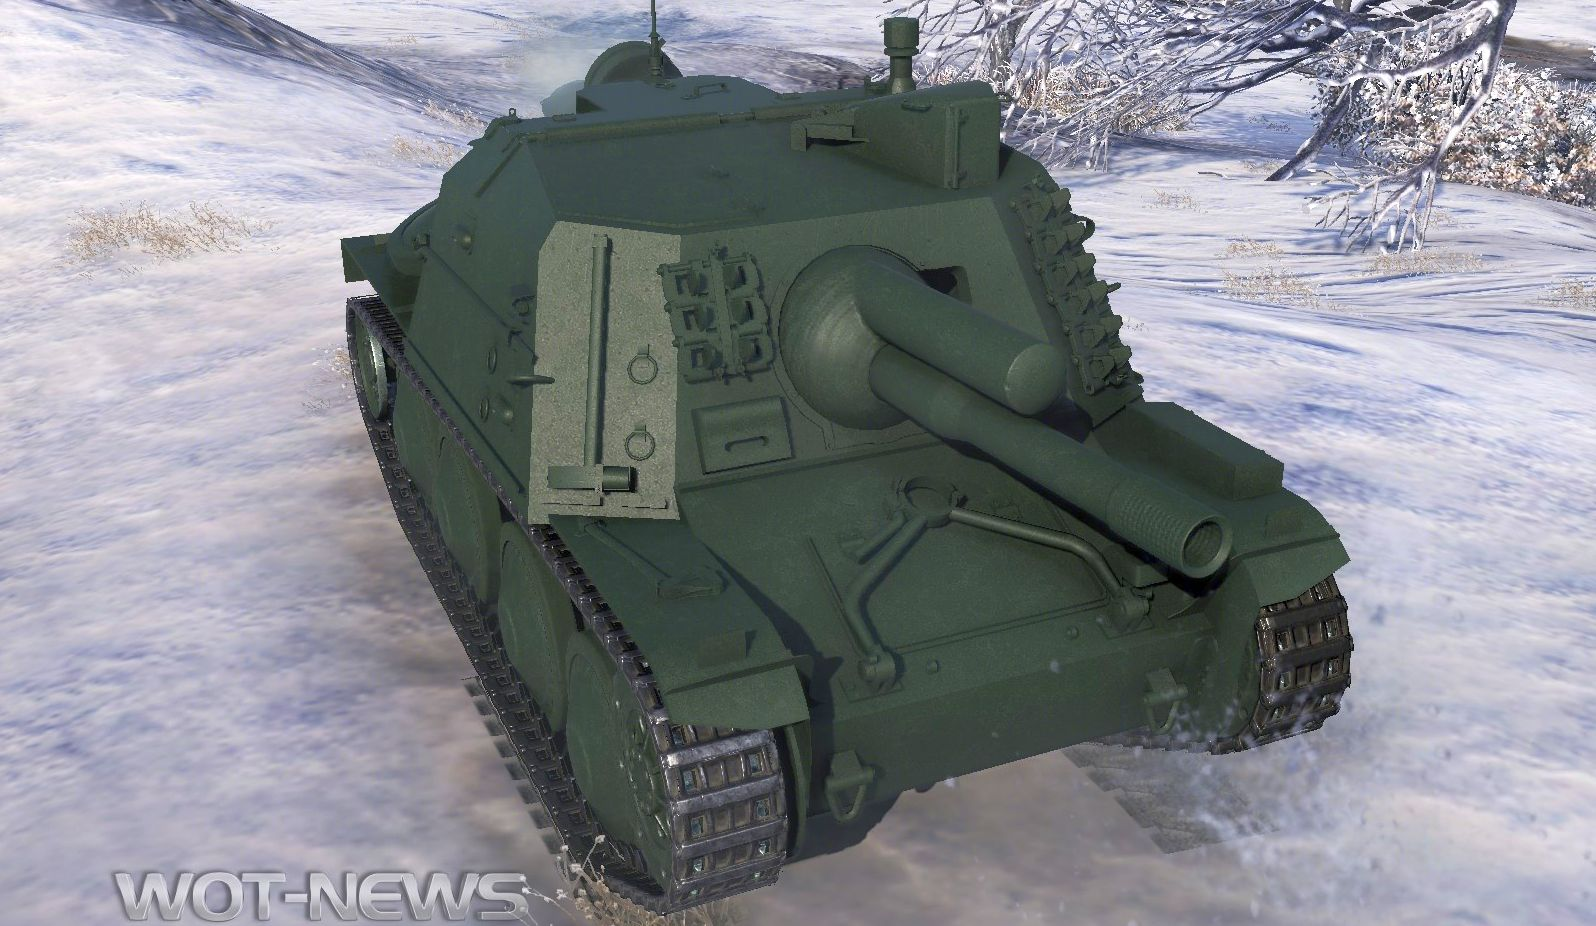 A 43 Wot massively multiplayer online wargames - wot news - wows news